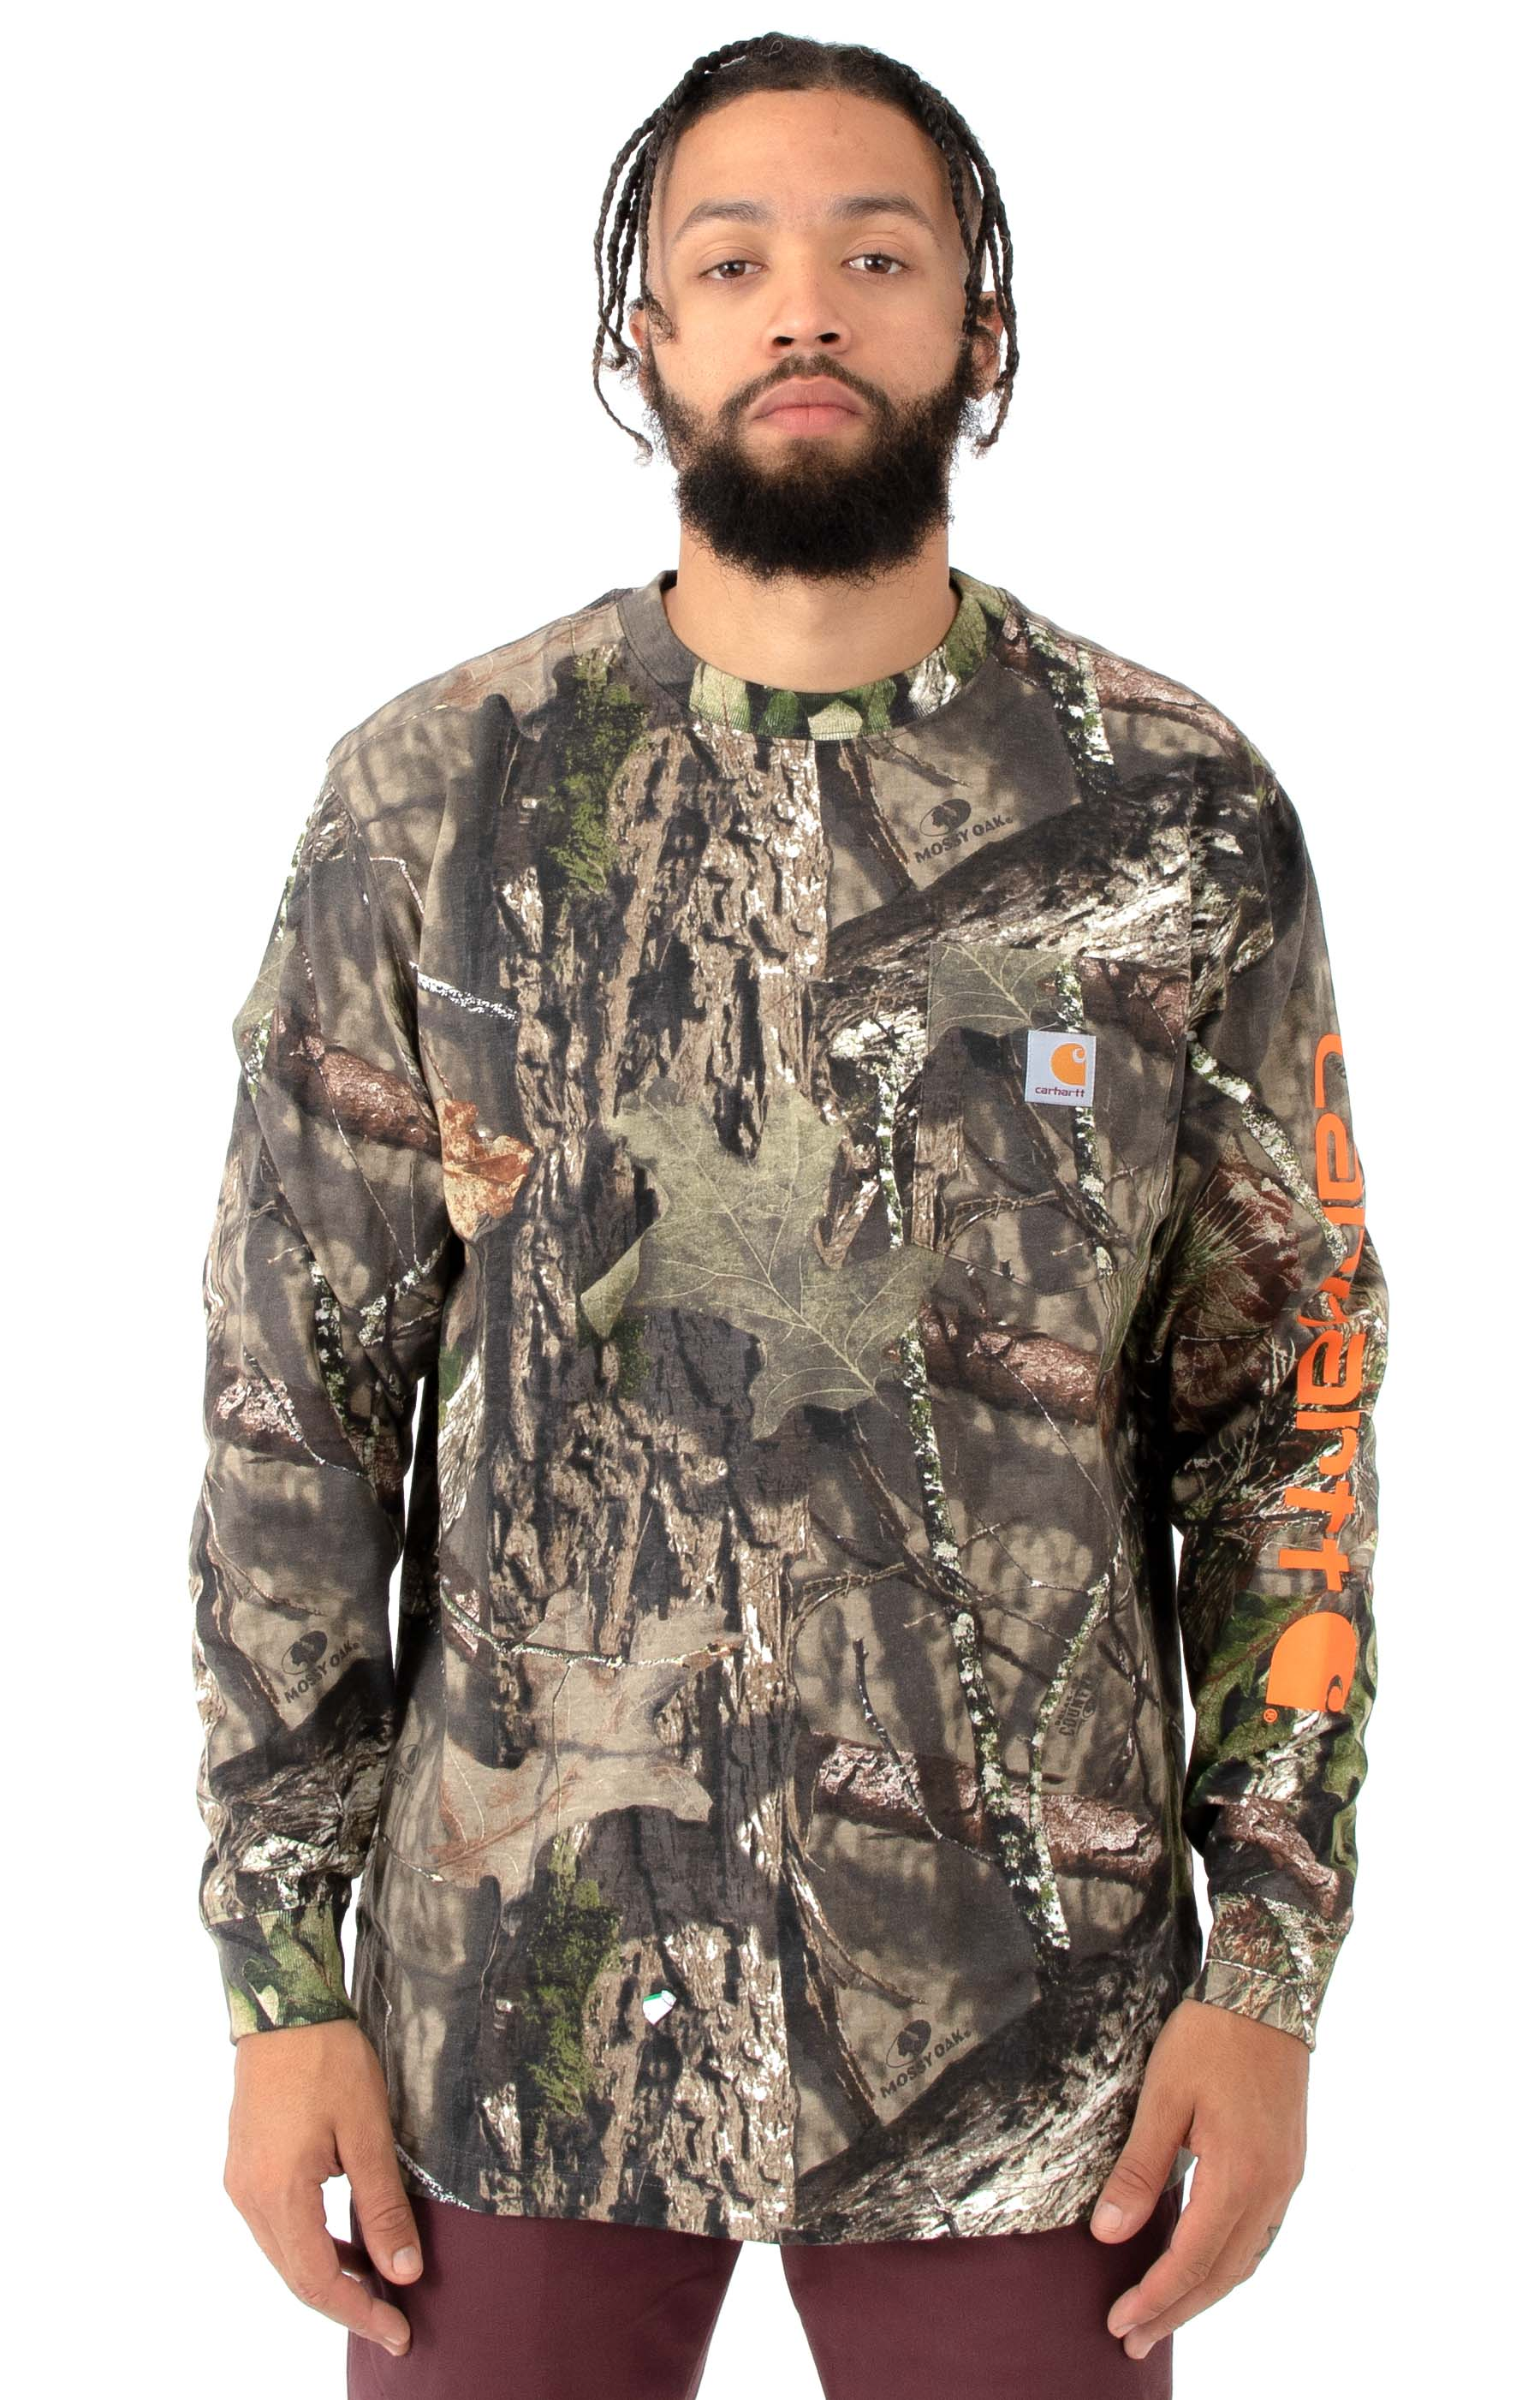 (101776) Workwear Graphic Camo L/S Shirt - Mossy Oak Break-Up Country